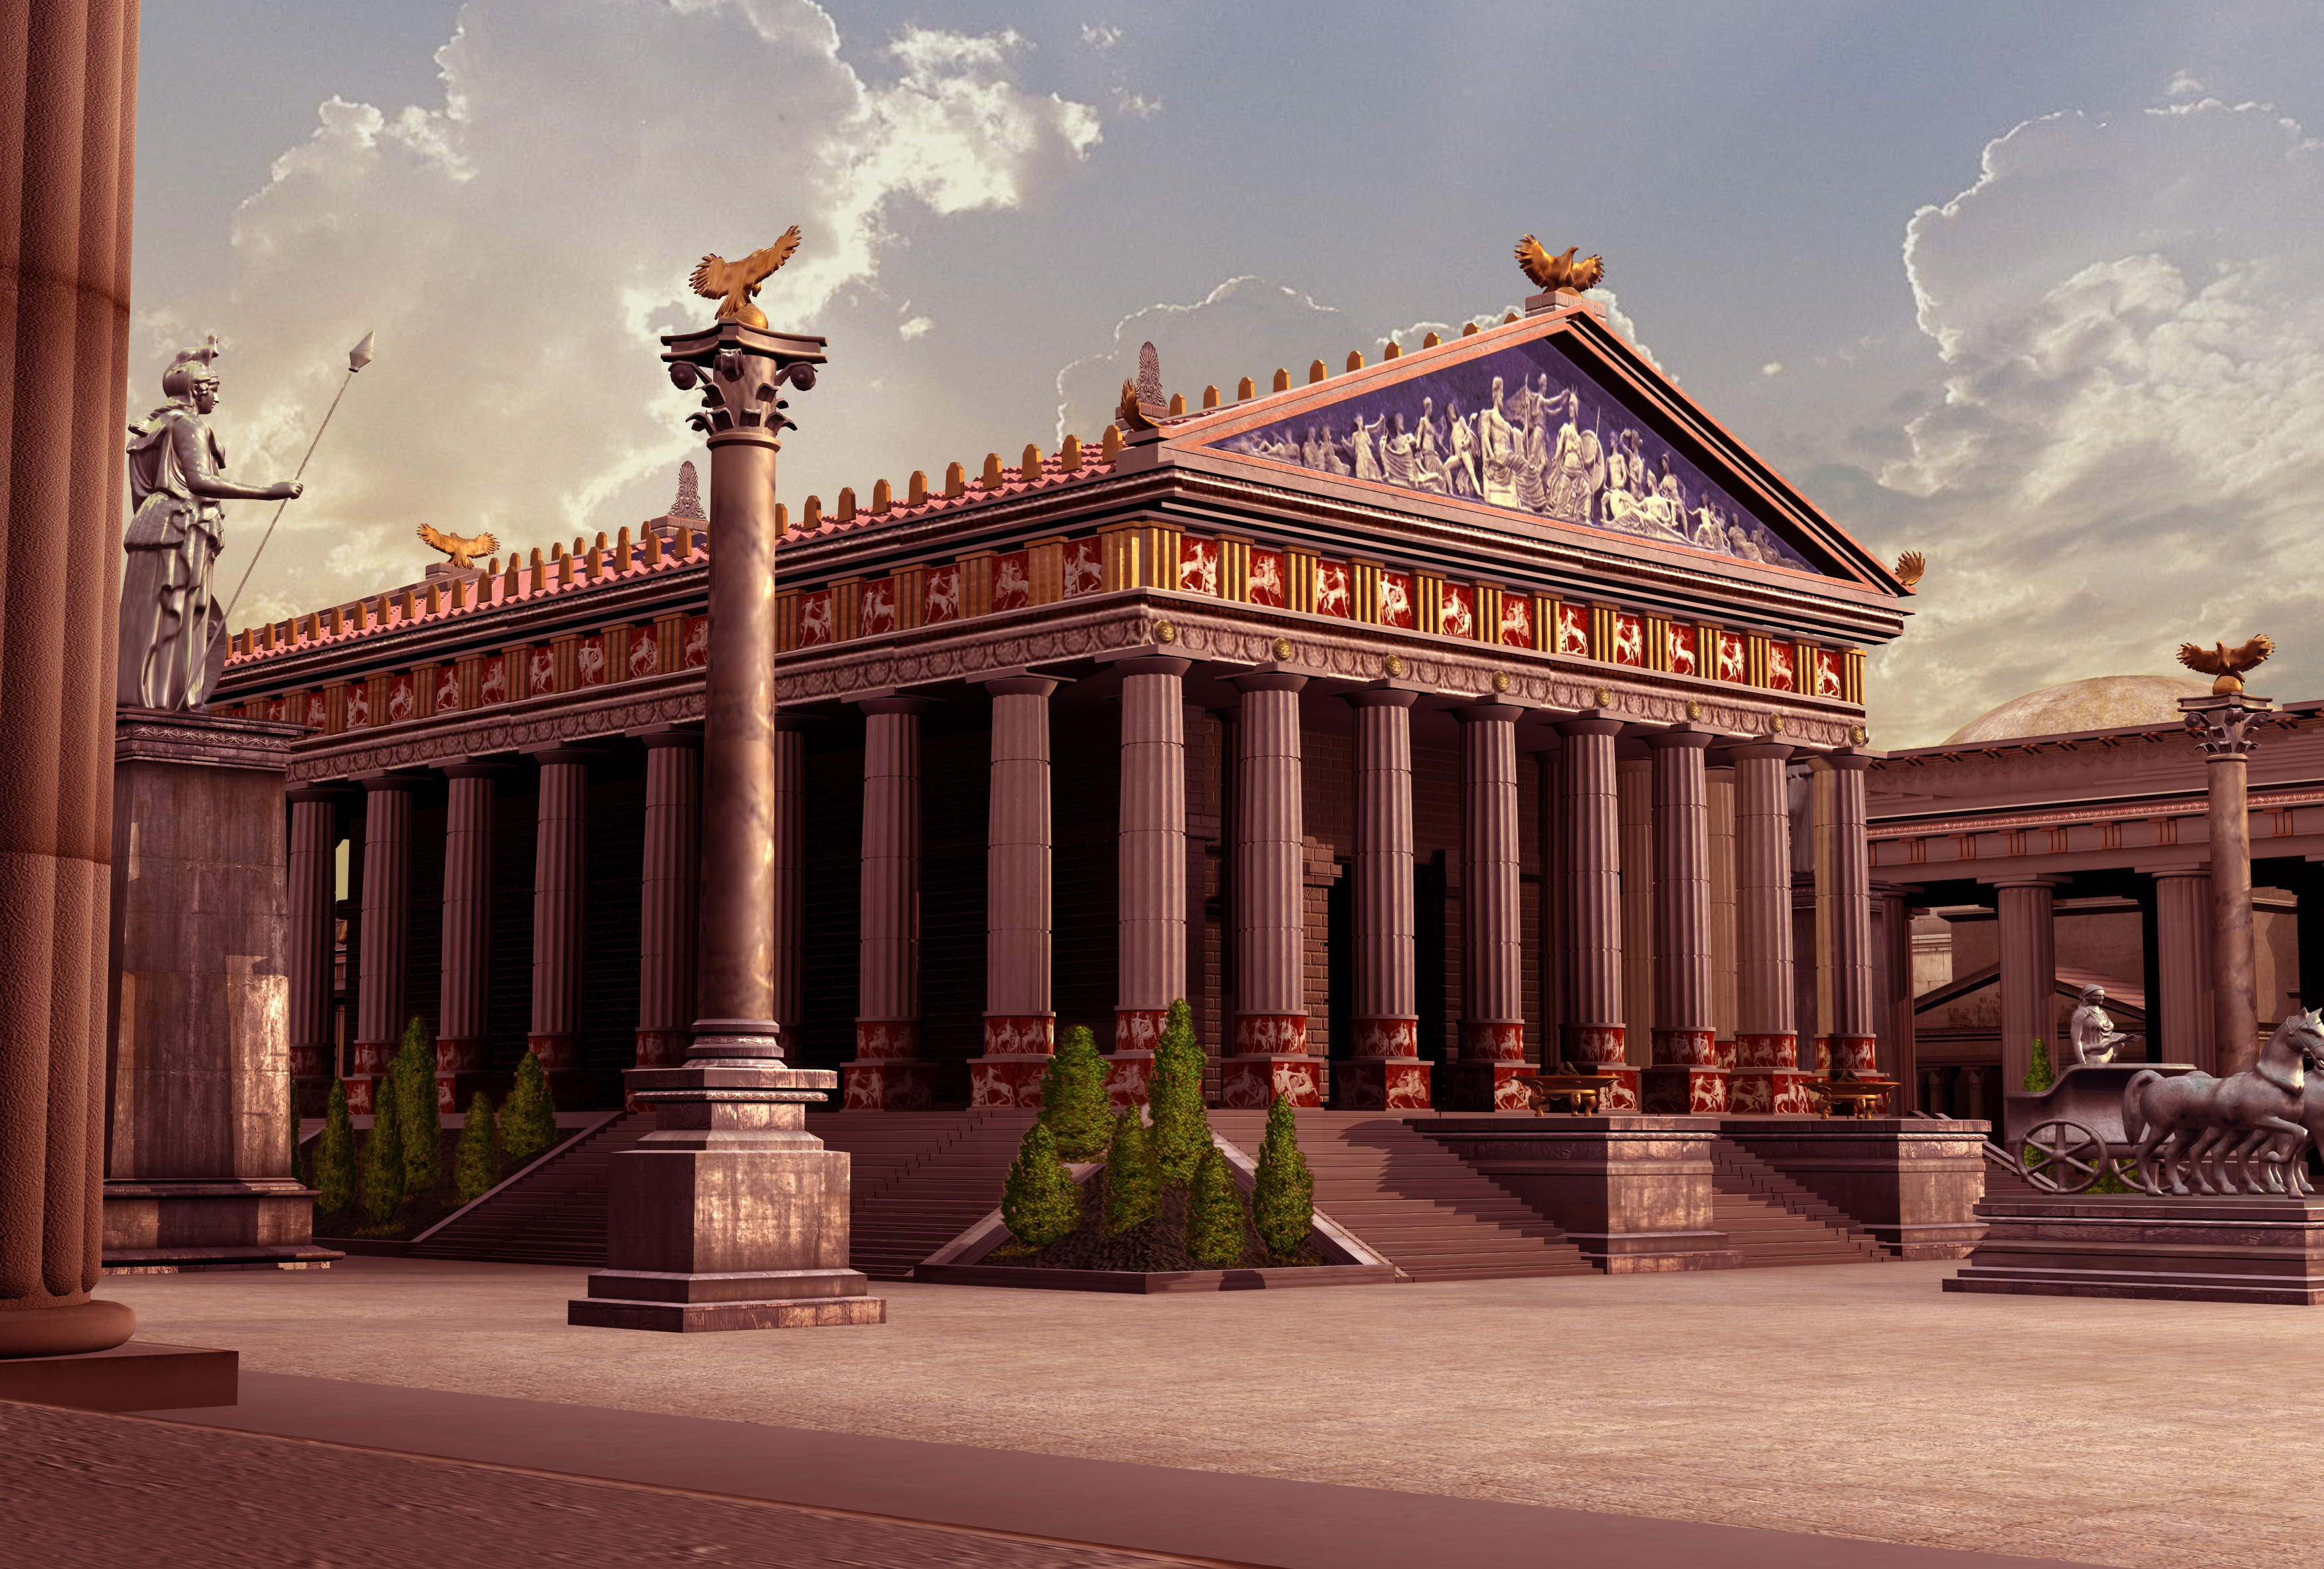 Temple of Artemis - Civilization IV